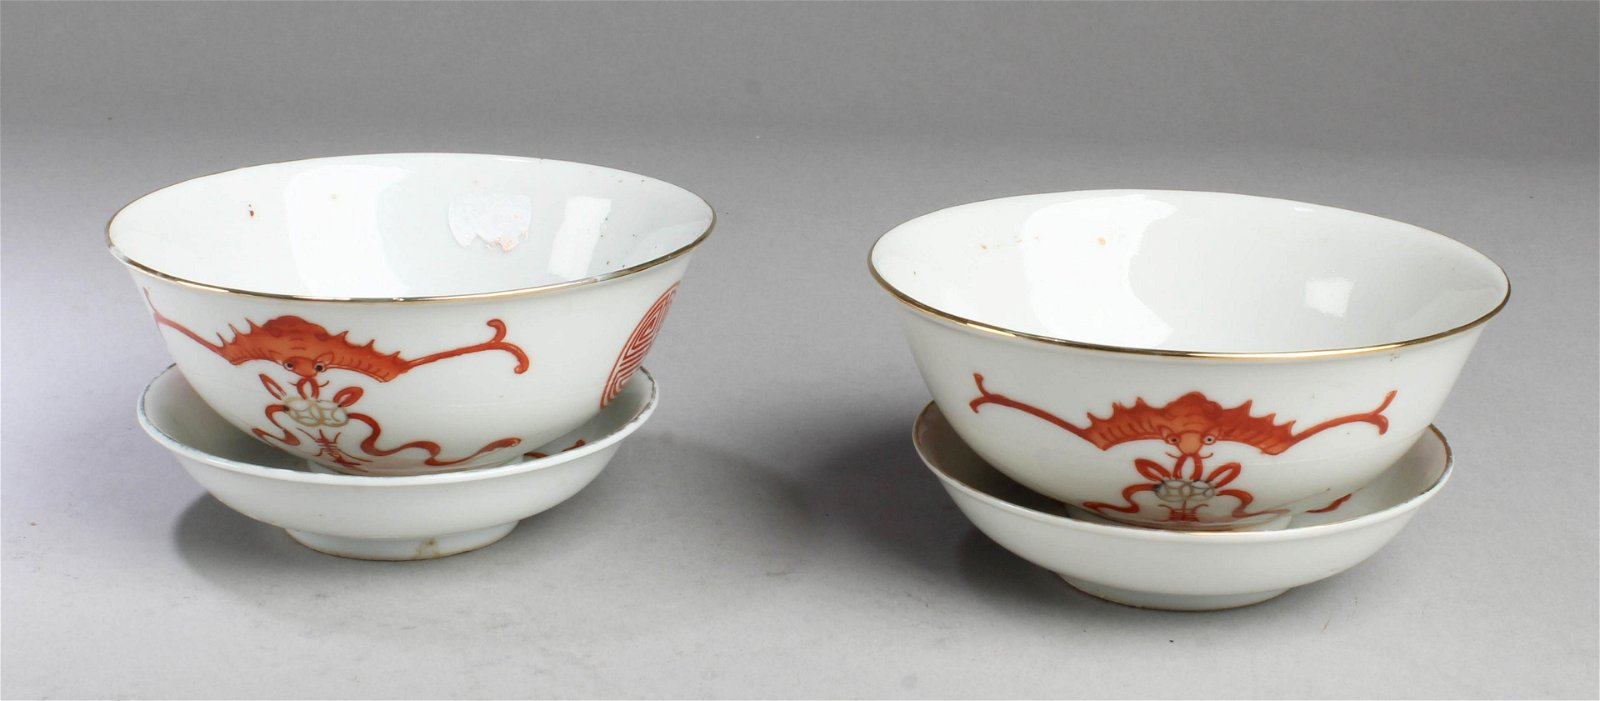 A Group of Two Antique Chinese Porcelain Bowls with